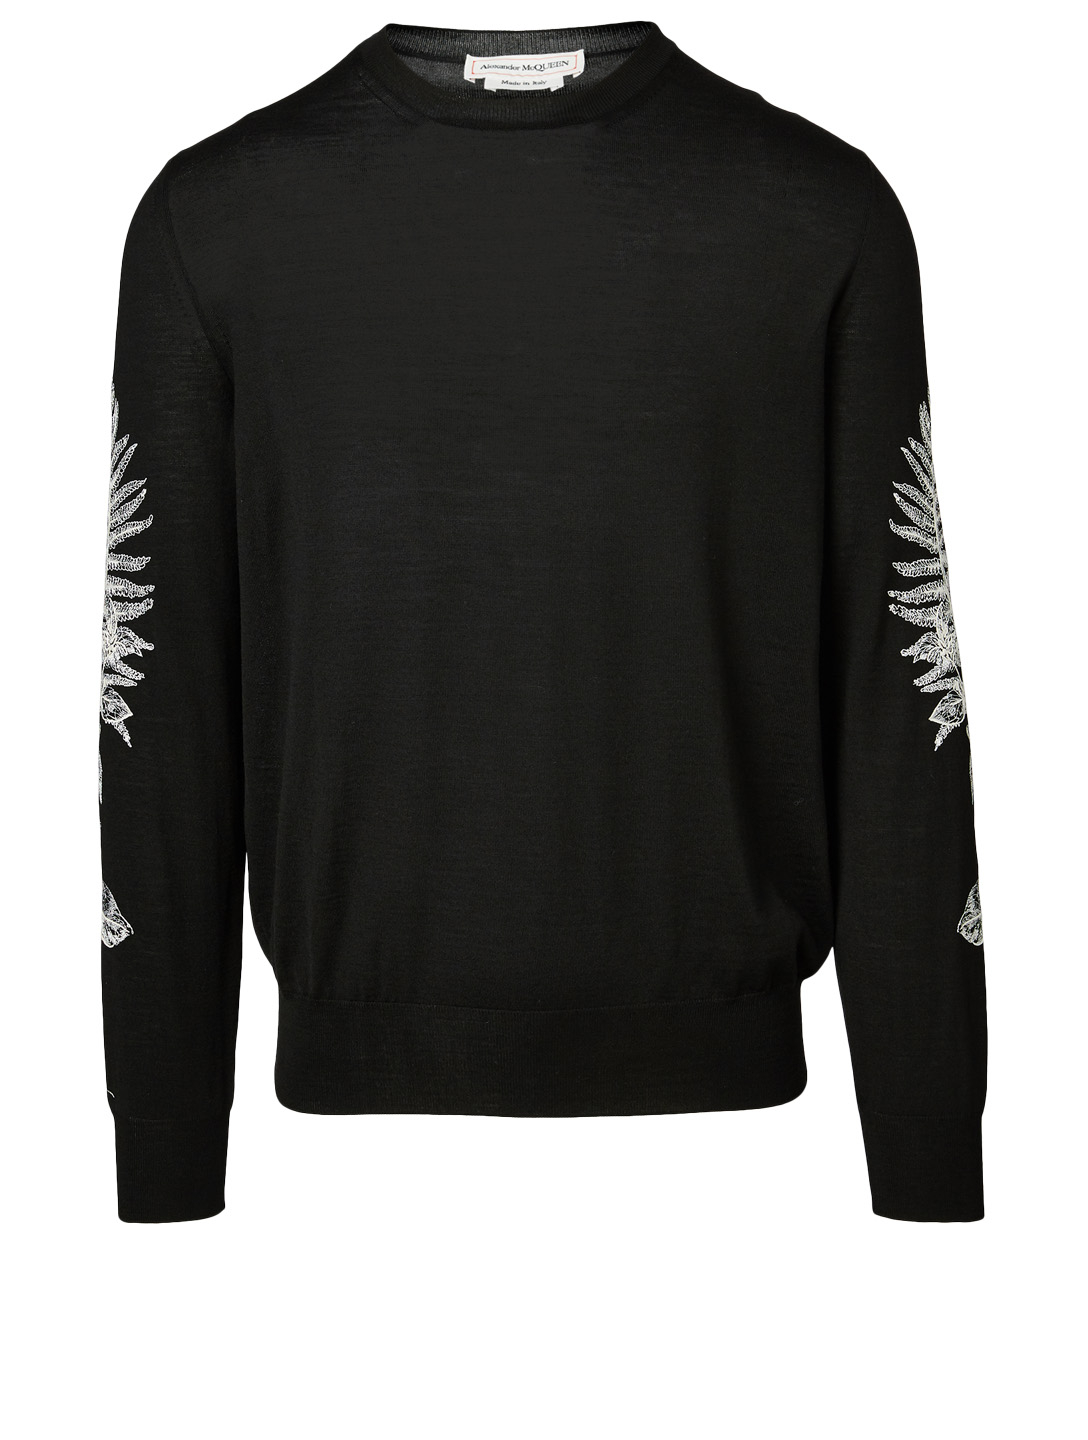 ALEXANDER MCQUEEN Wool Crewneck Sweater With Fern Embroidery Men's Black